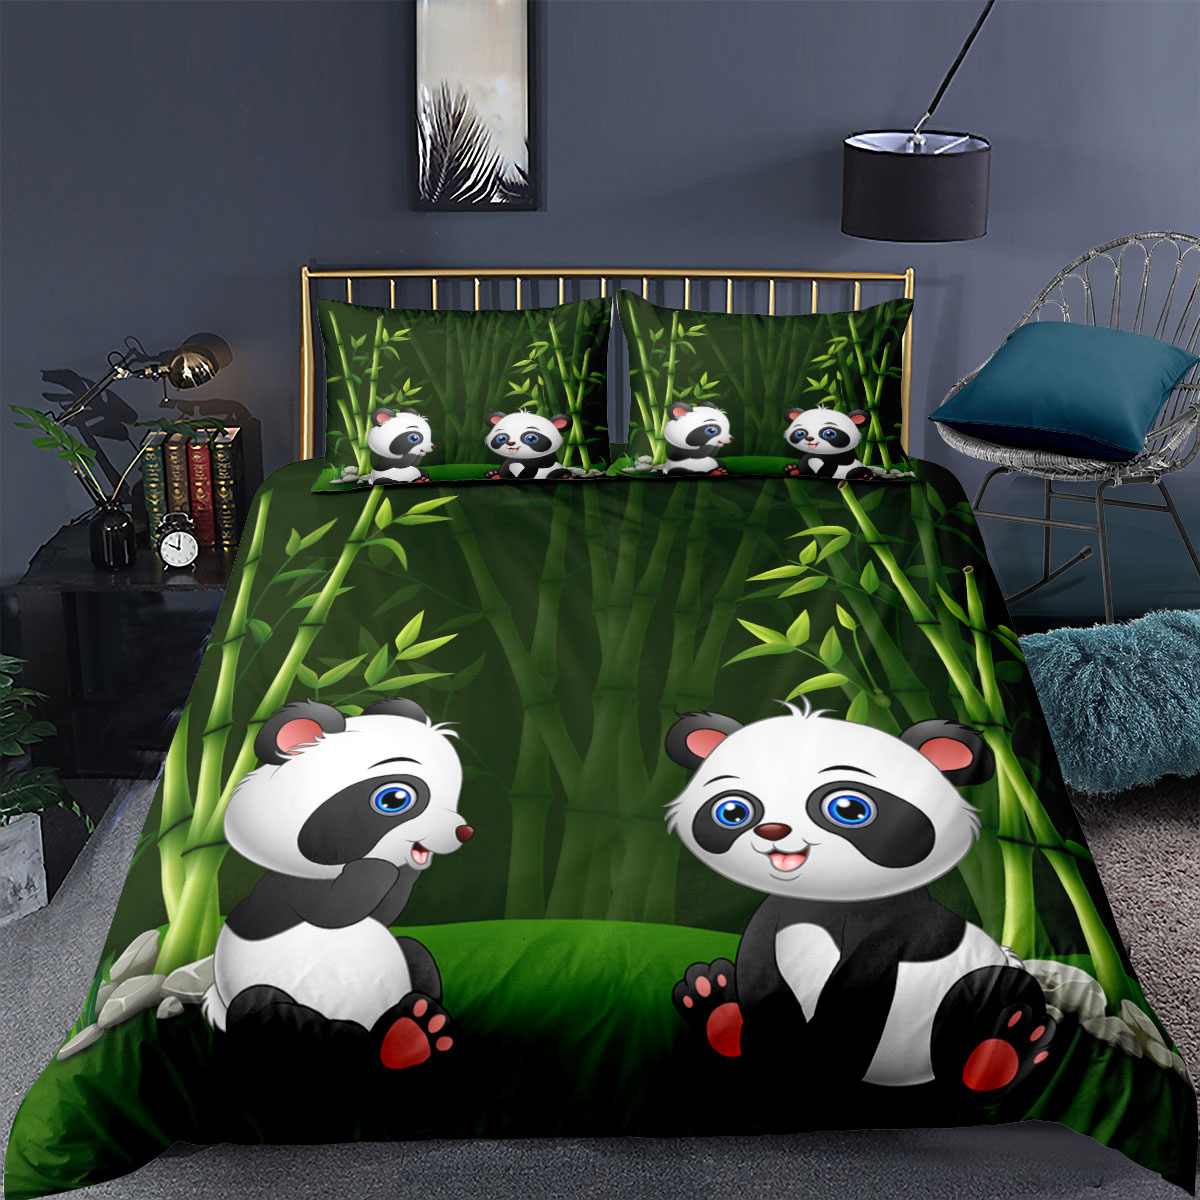 Cartoon Panda Pattern 3d Duvet Cover Set Kids/Children Soft Bedding Set Boys Girls Comforters Cover Green Bamboo Bed set